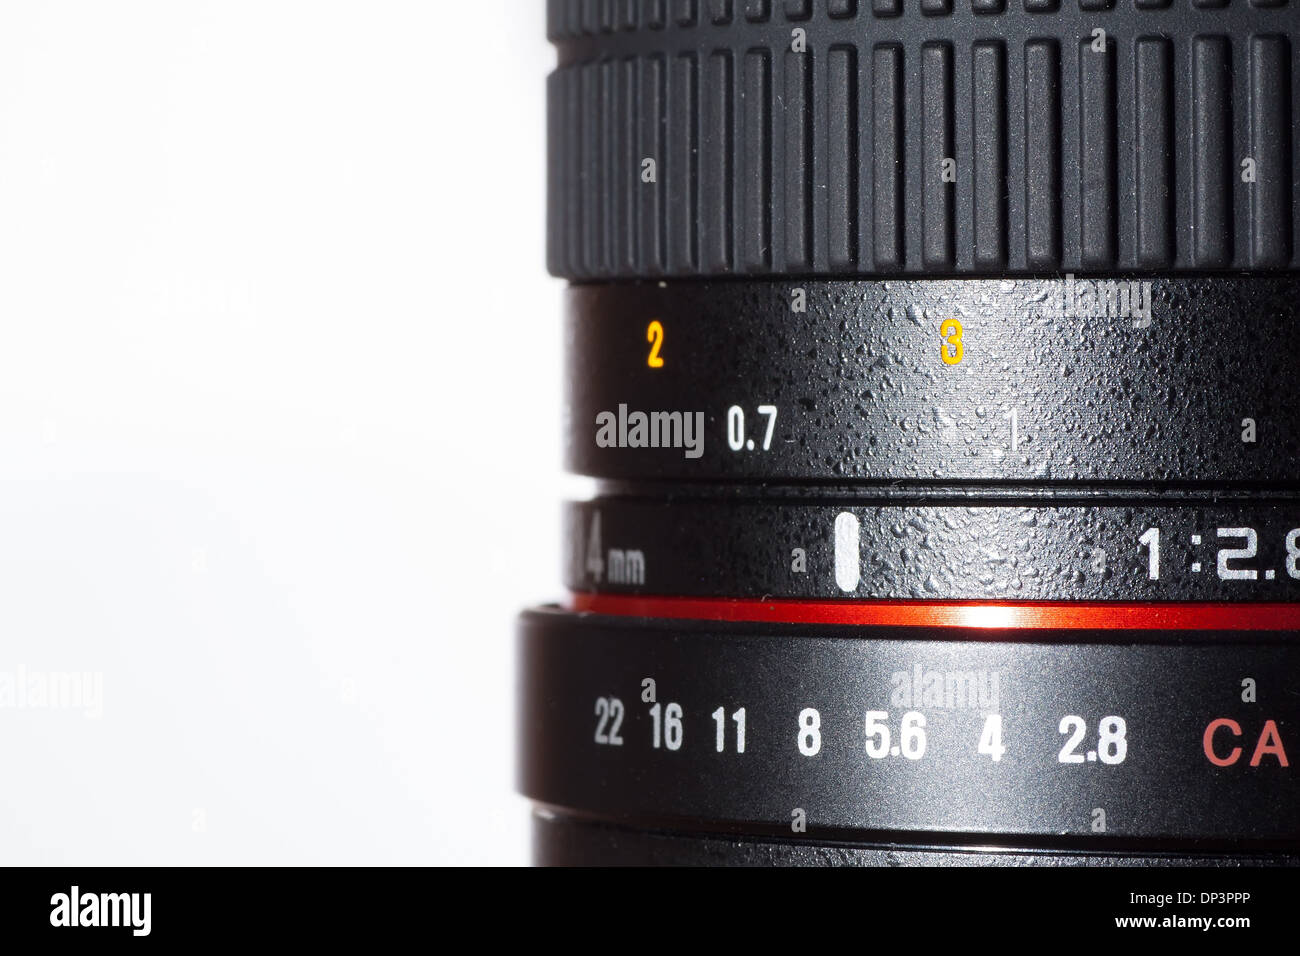 photography of profesional photo lens detail - Stock Image